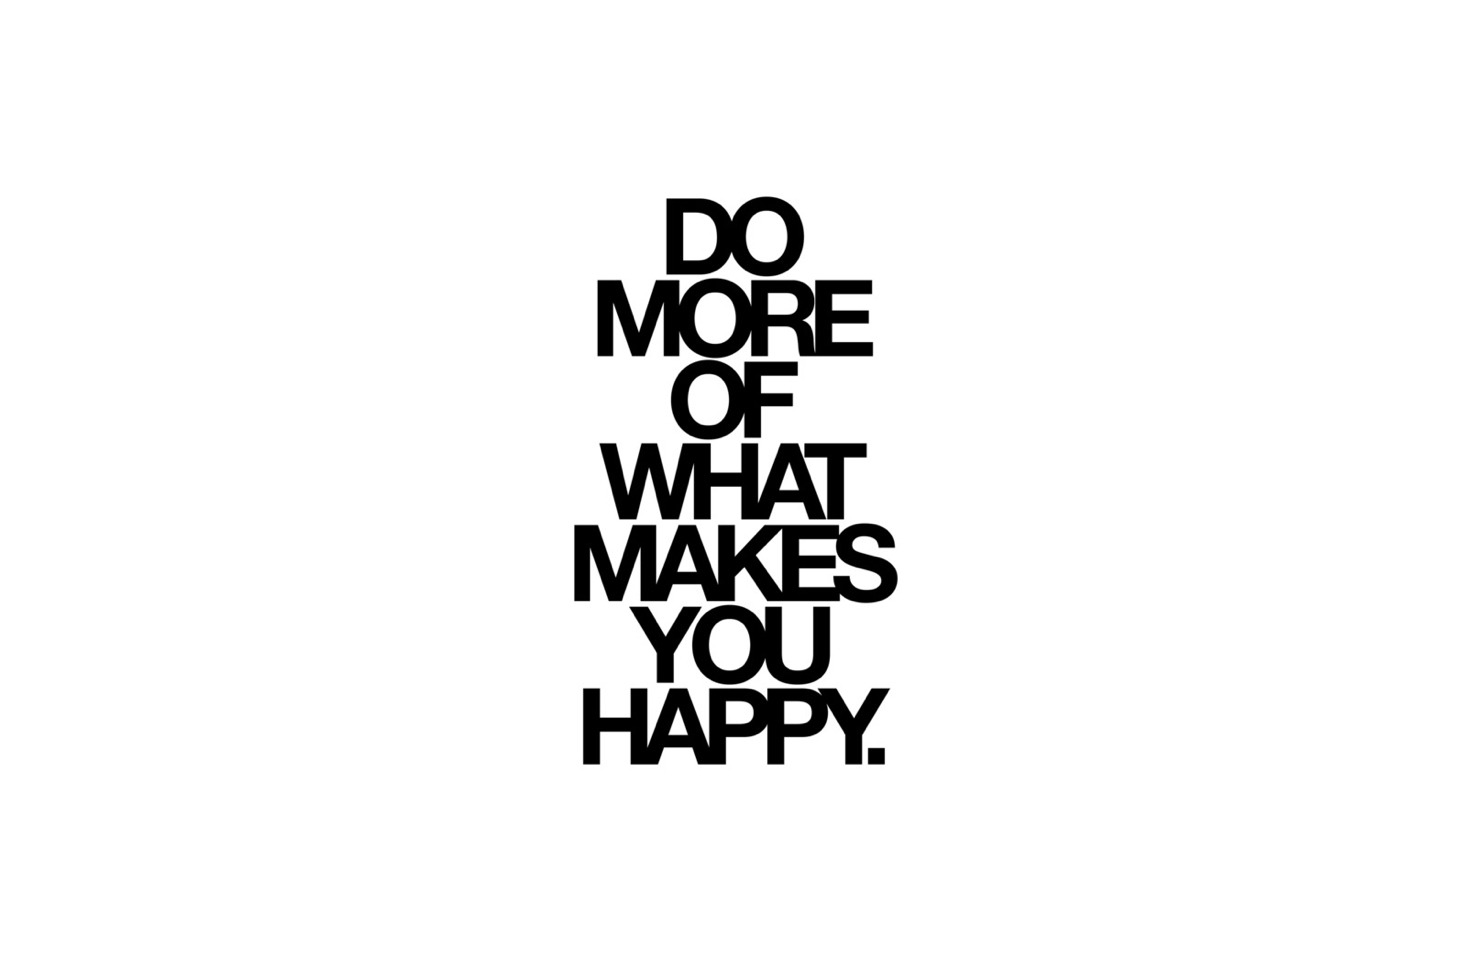 what makes you happy essay tufts Sin categoría money makes you happy essay tufts septiembre 19, 2018 - sin categoría research papers suggest that current era of low interest rates has prompted rethinking of the #feds approach to us #inflation.